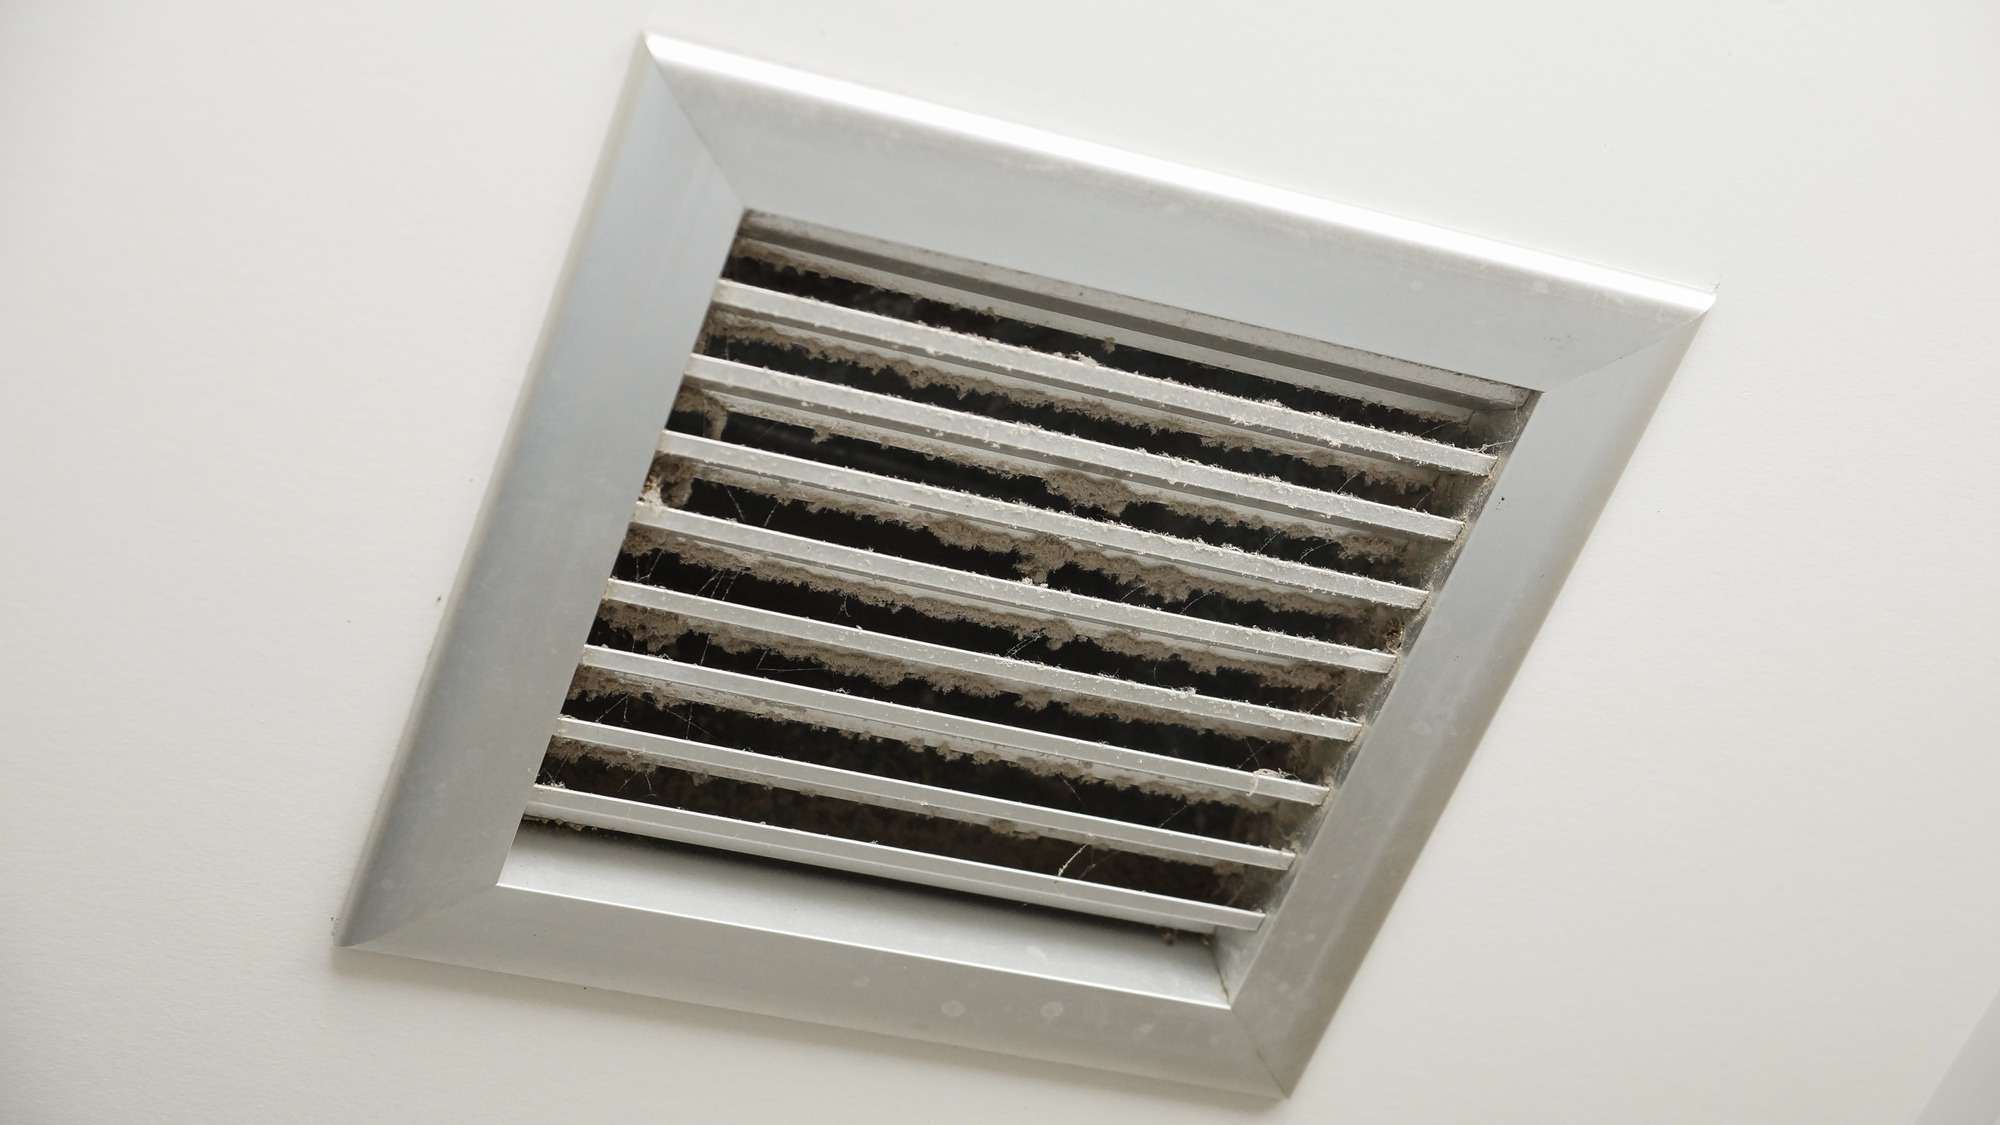 Dirty air ventilator on the ceiling